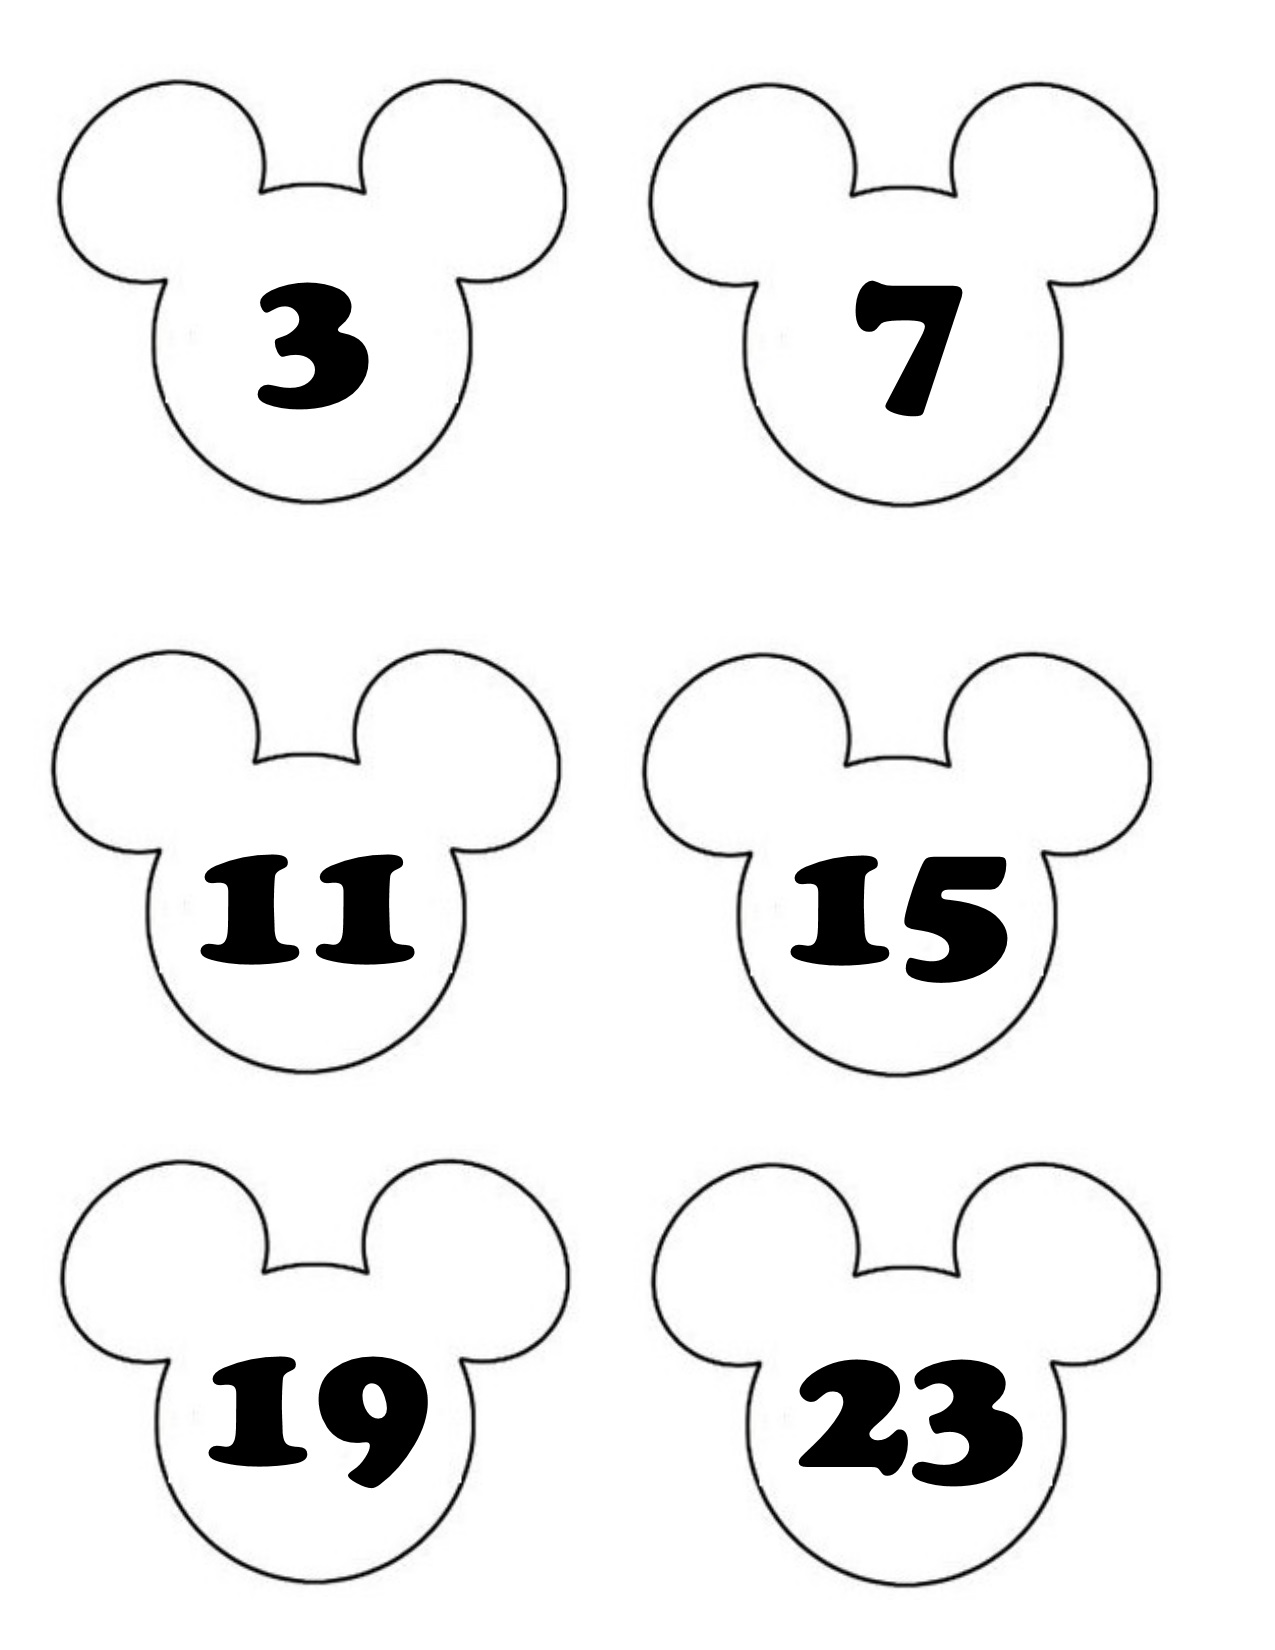 Mickey-advent-template-3